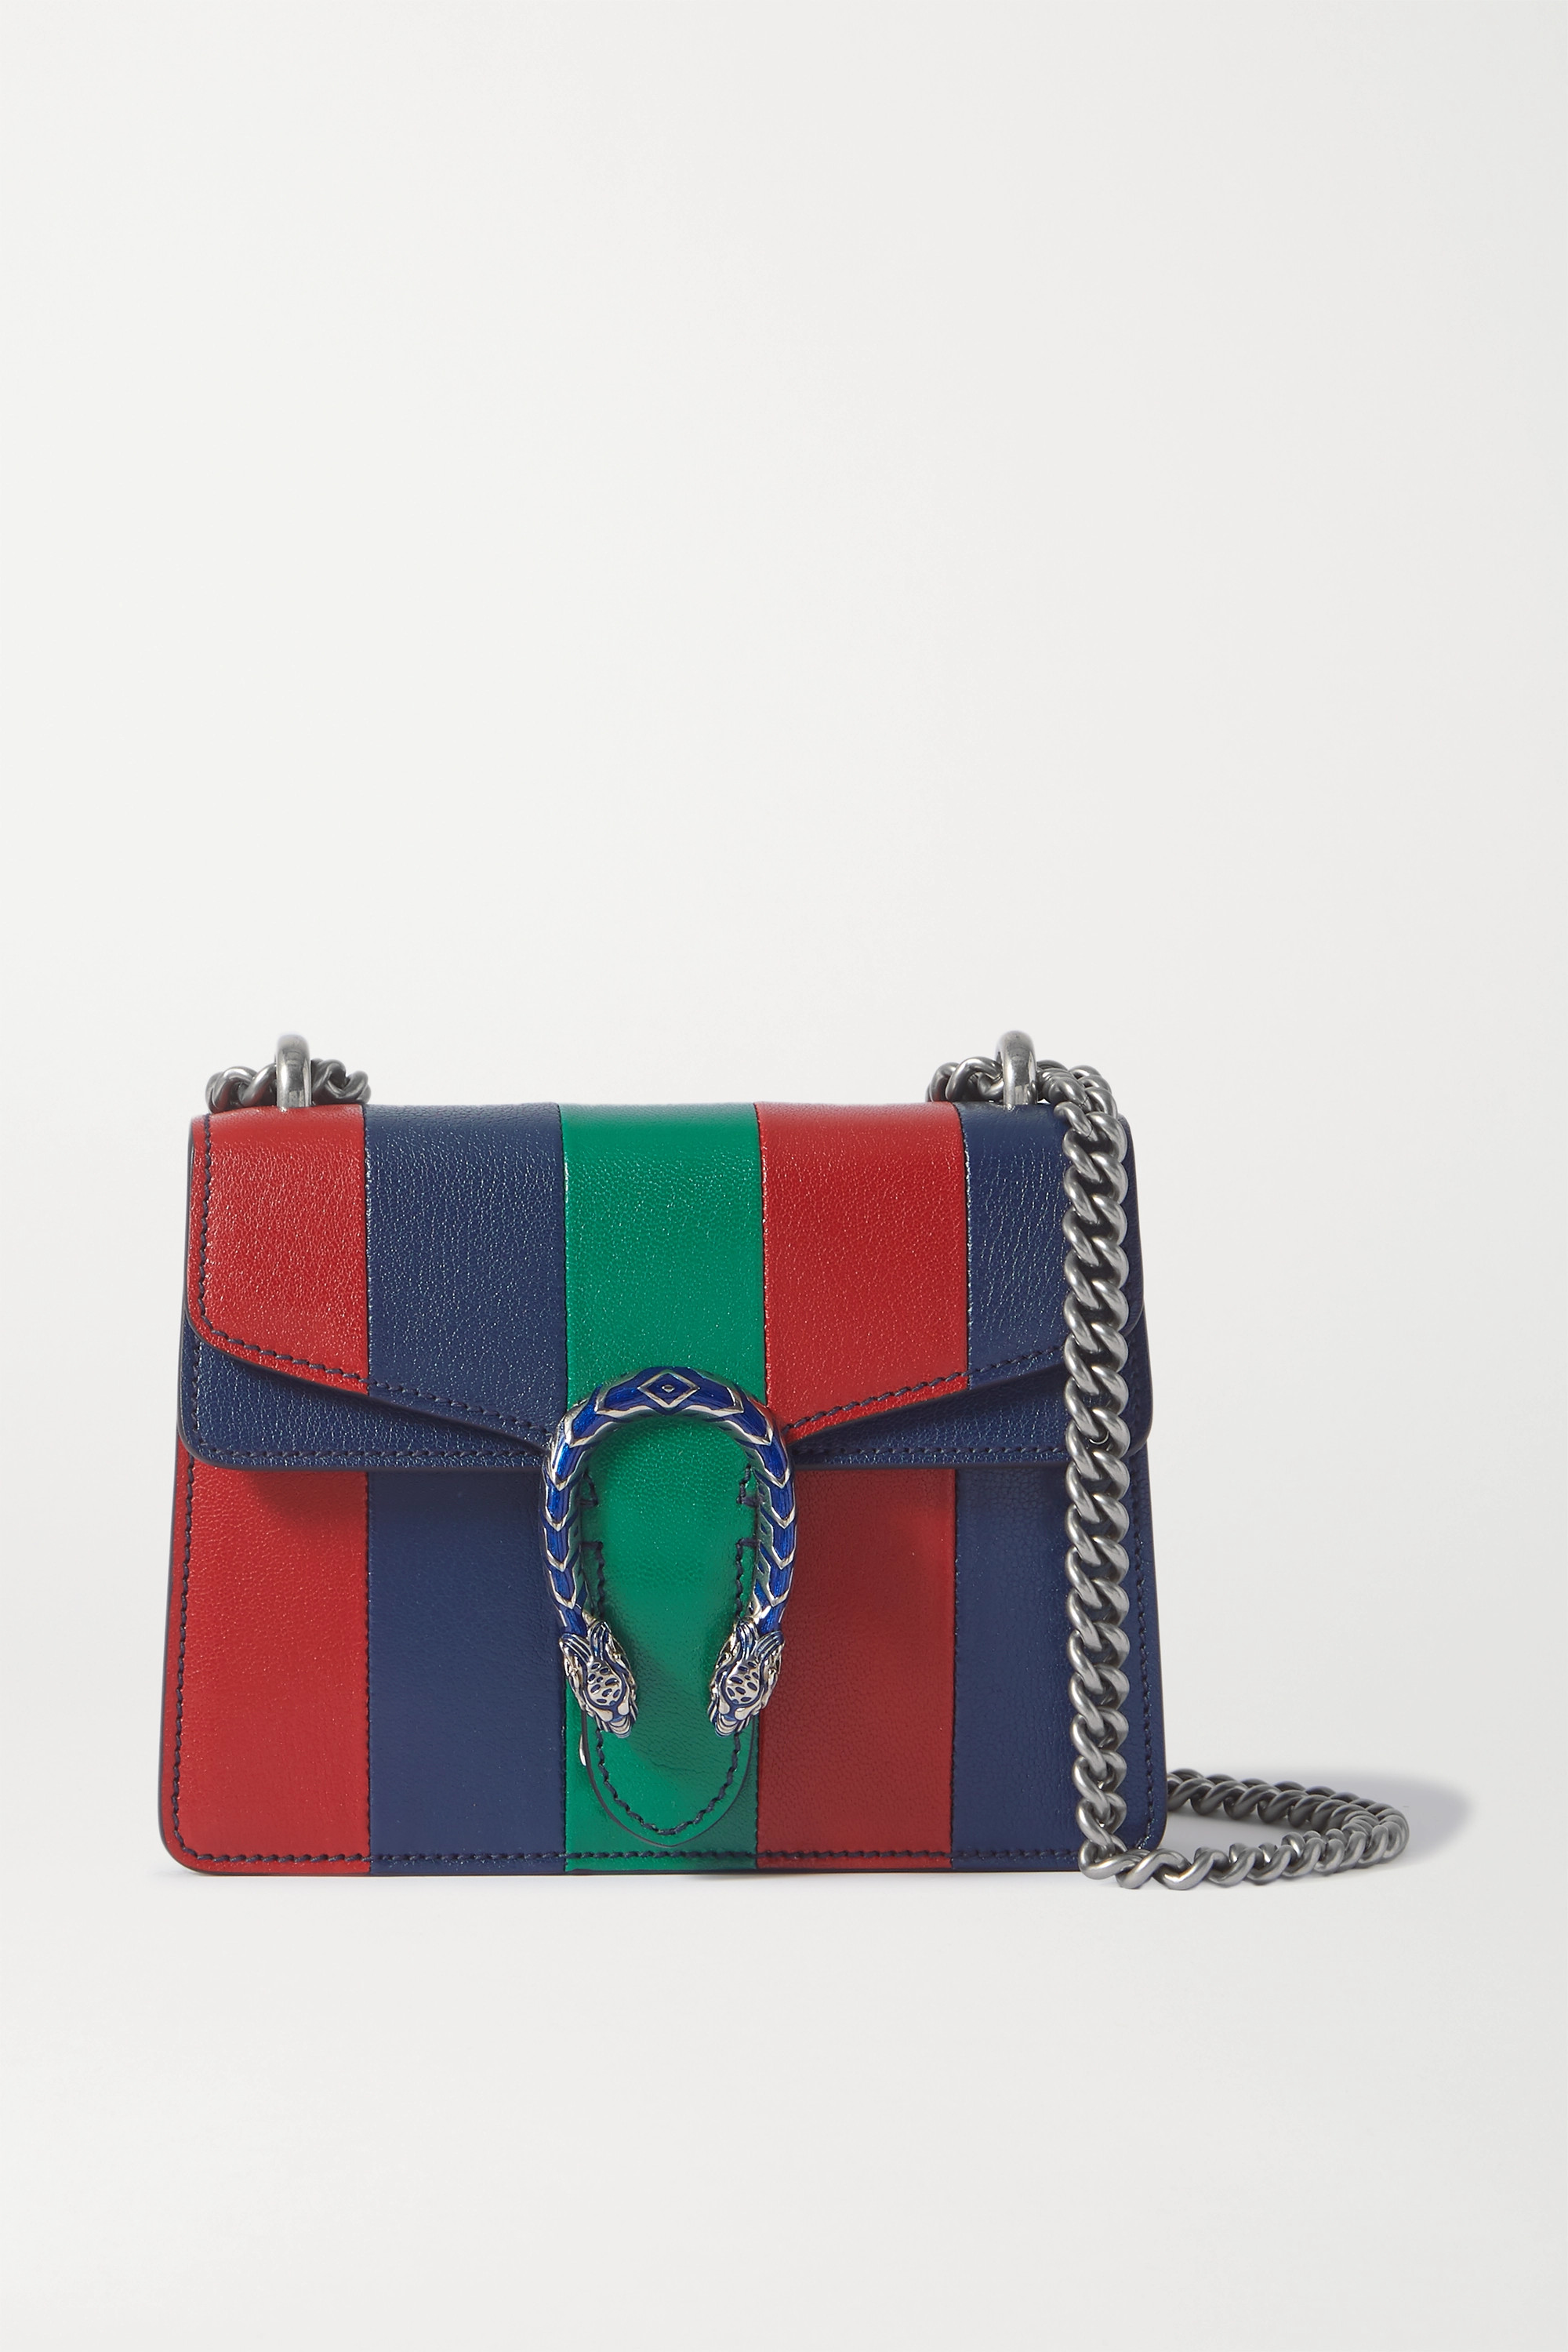 GUCCI + NET SUSTAIN Dionysus extra small striped leather shoulder bag